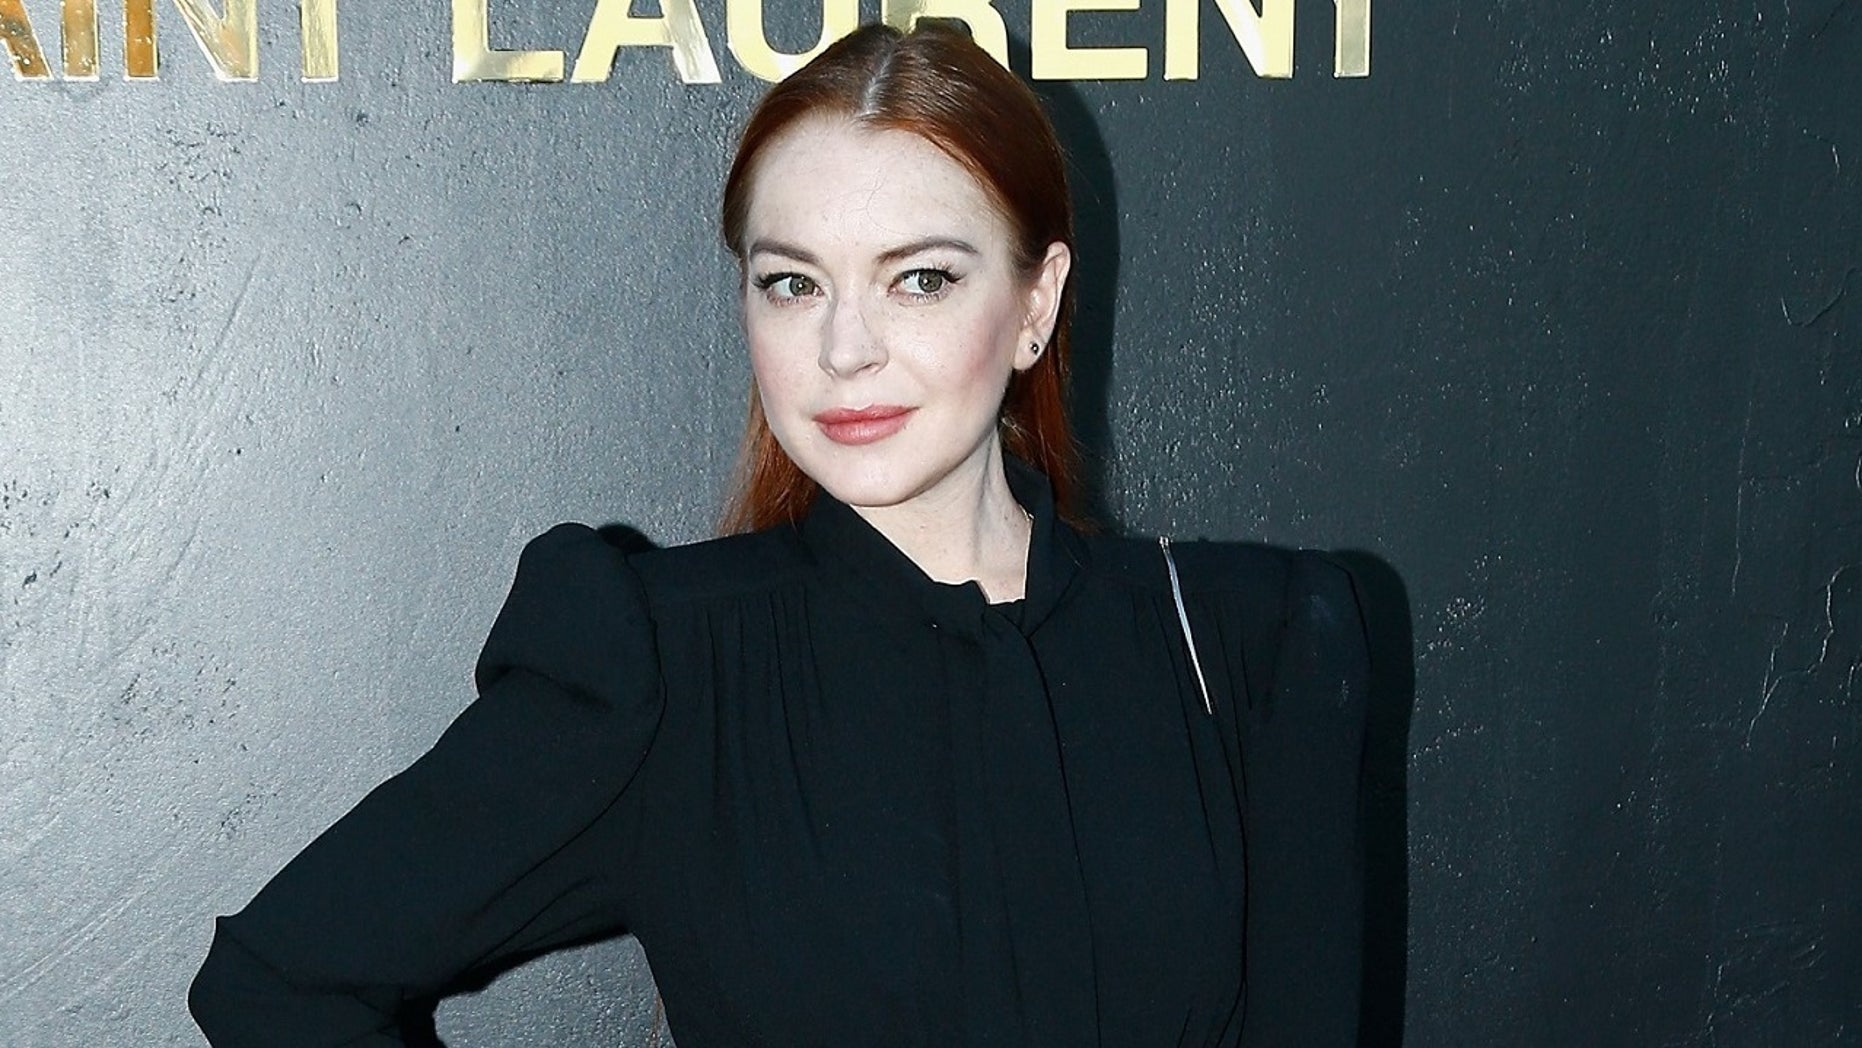 Lindsay Lohan gets flak for controversial Instagram video with a homeless family